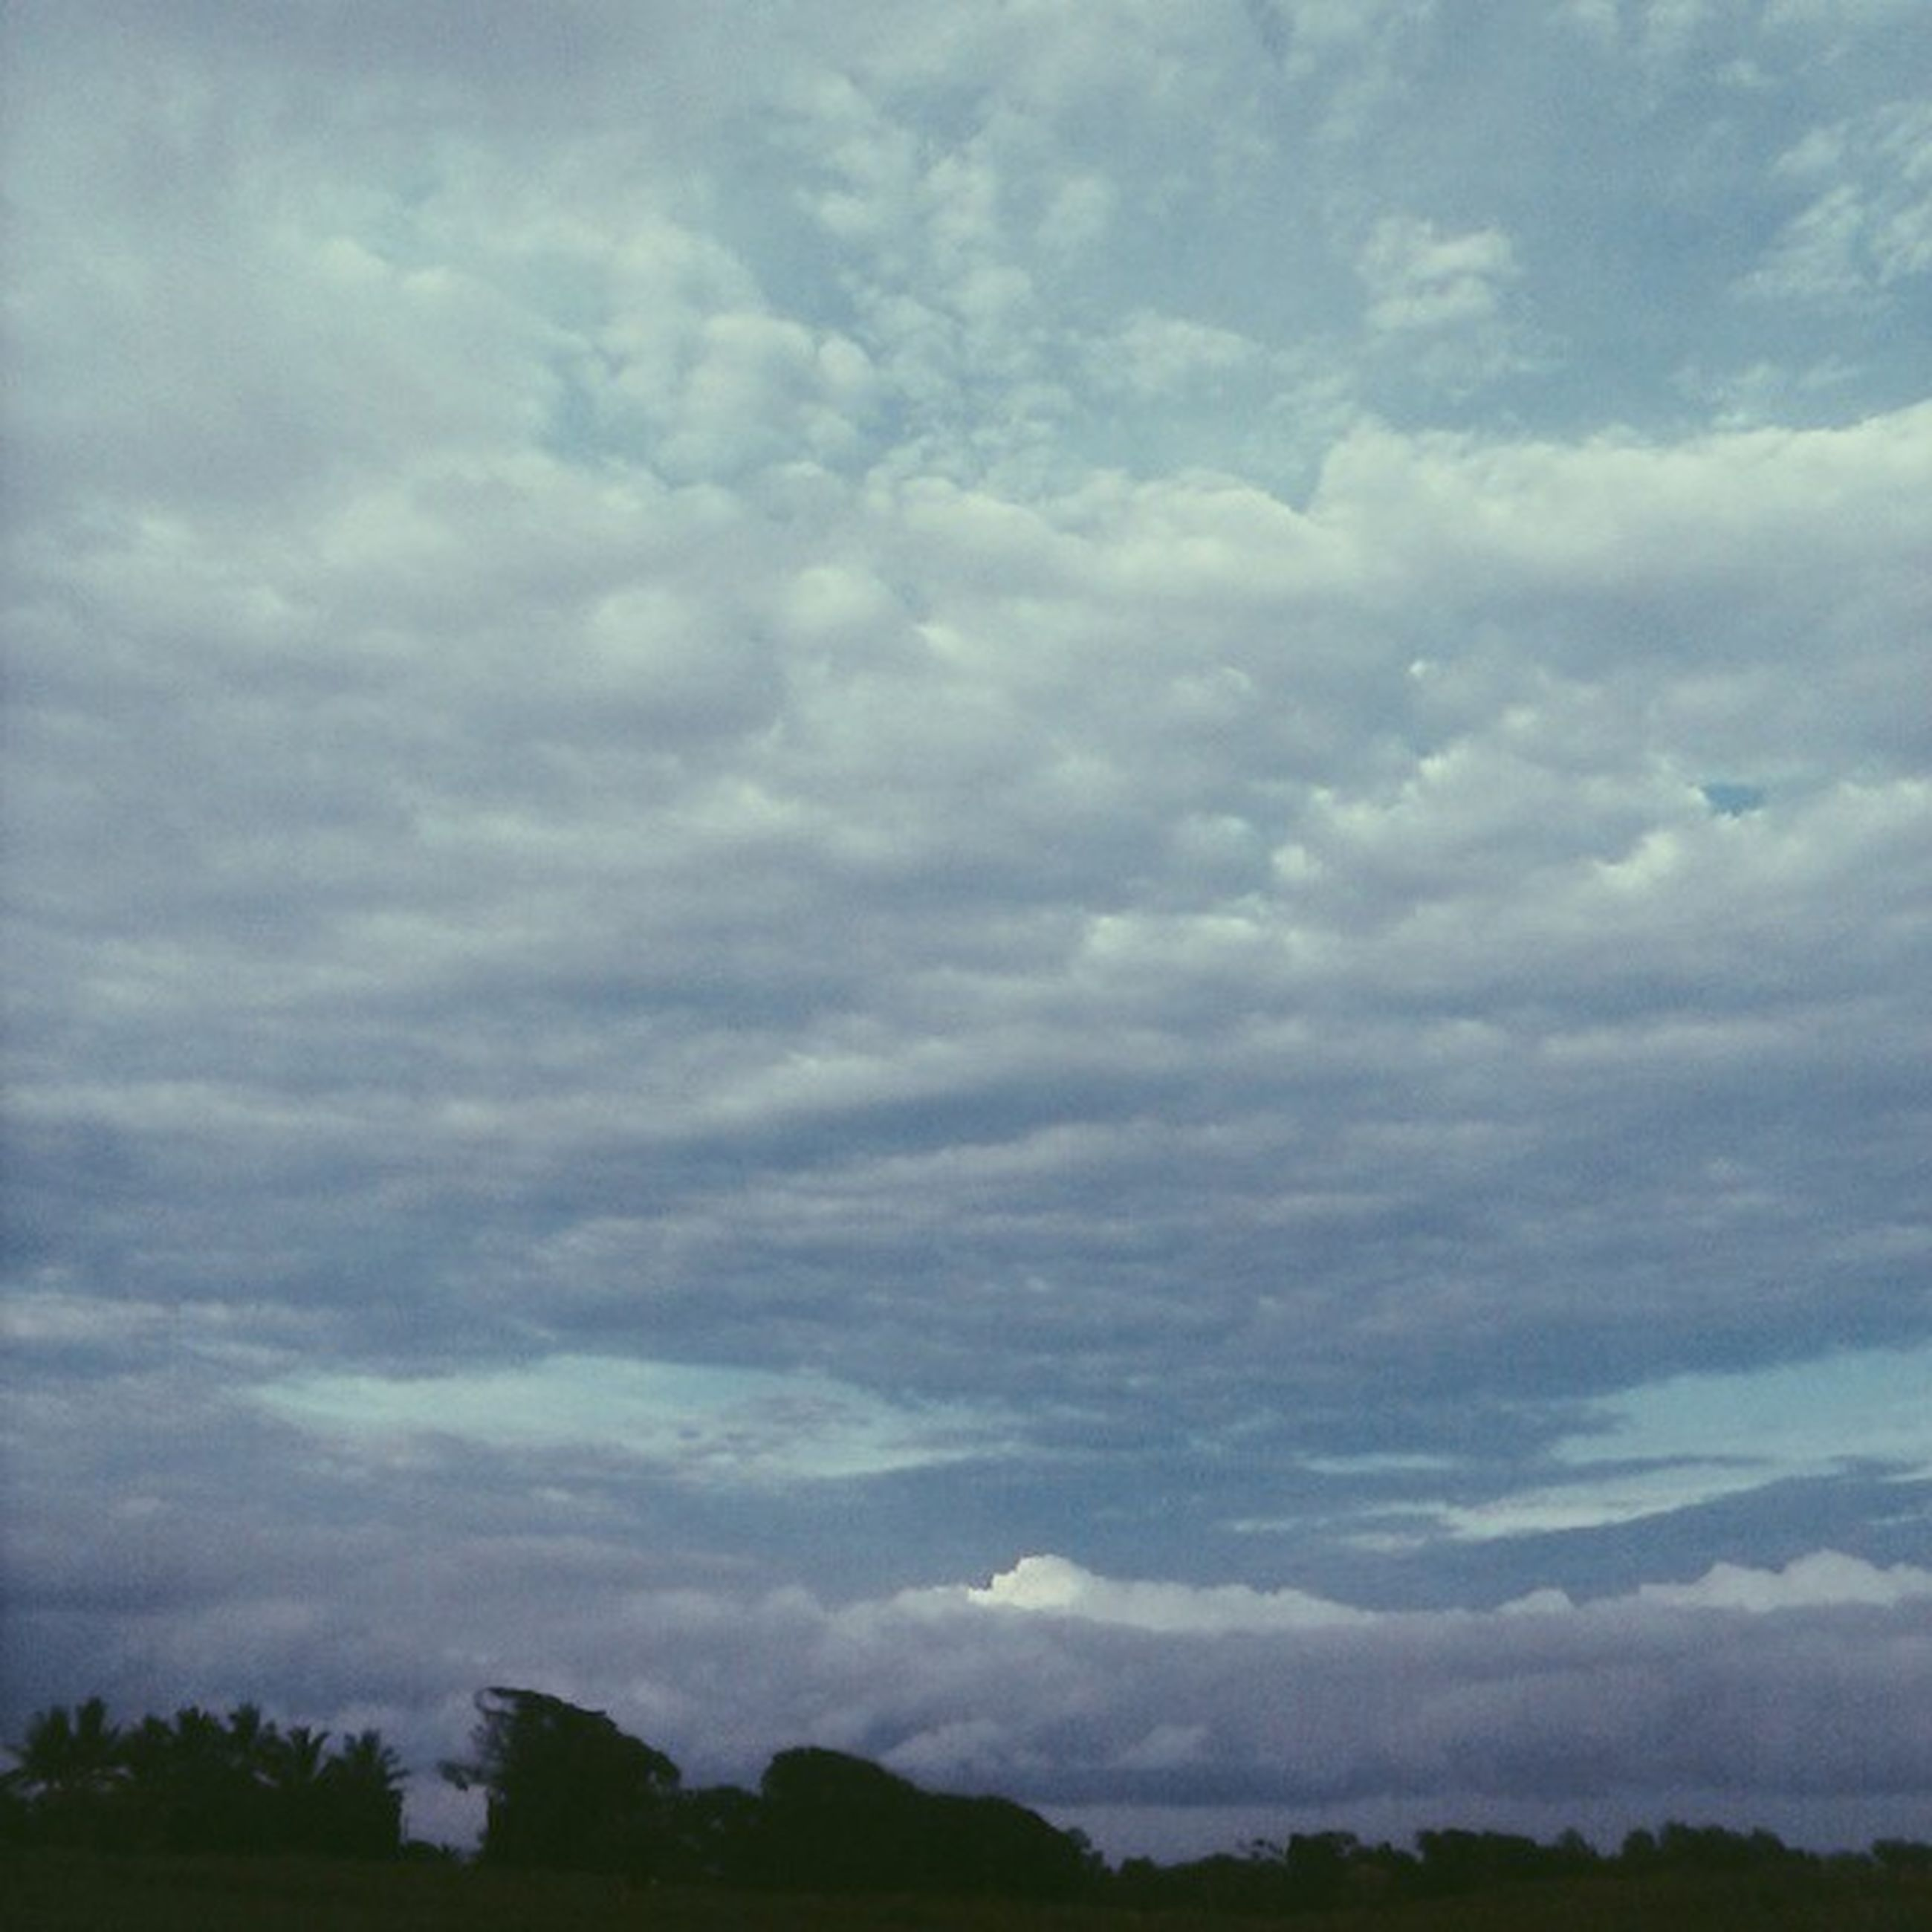 sky, cloud - sky, cloudy, tranquil scene, tranquility, scenics, beauty in nature, landscape, nature, cloud, tree, weather, cloudscape, overcast, idyllic, silhouette, non-urban scene, outdoors, mountain, low angle view